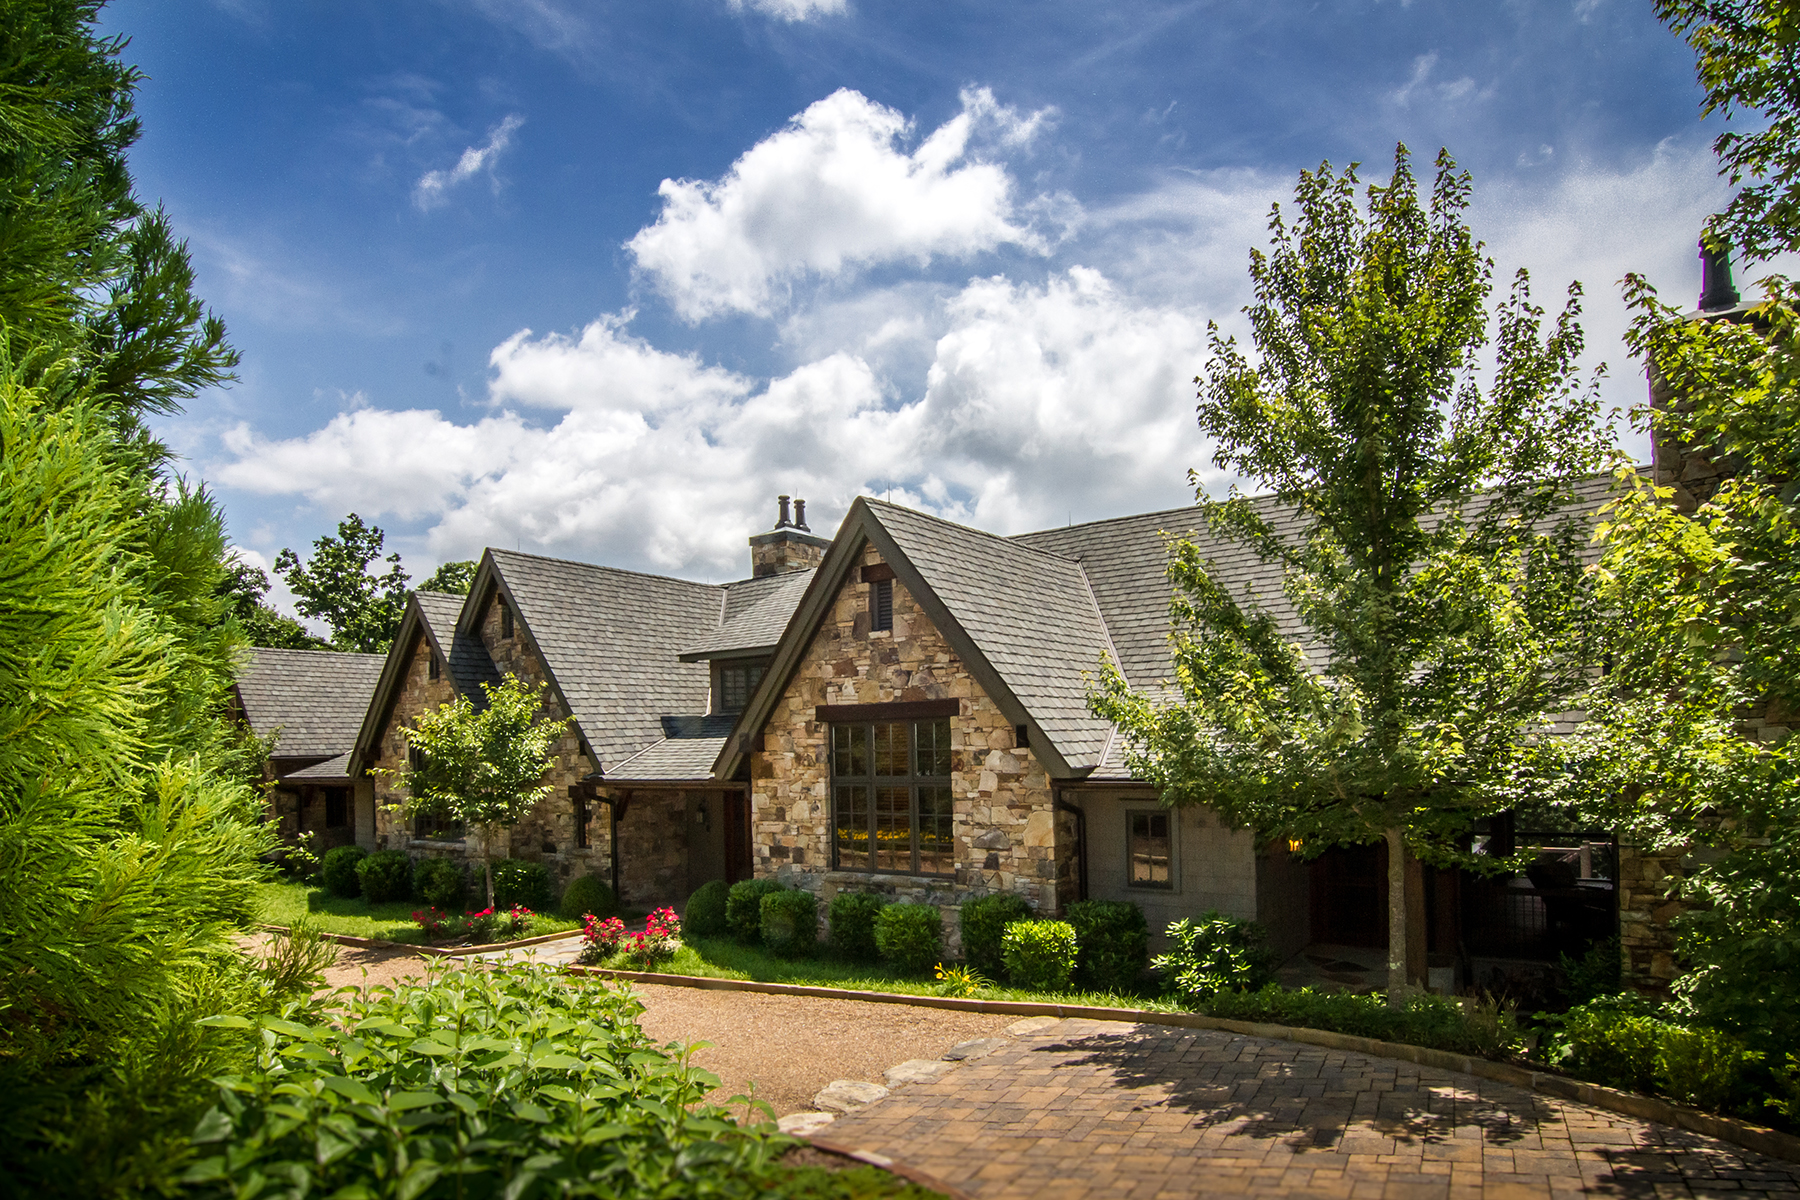 Single Family Home for Sale at MILL SPRING - BRIGHT'S CREEK 305 Kincaid Pl Mill Spring, North Carolina, 28756 United States